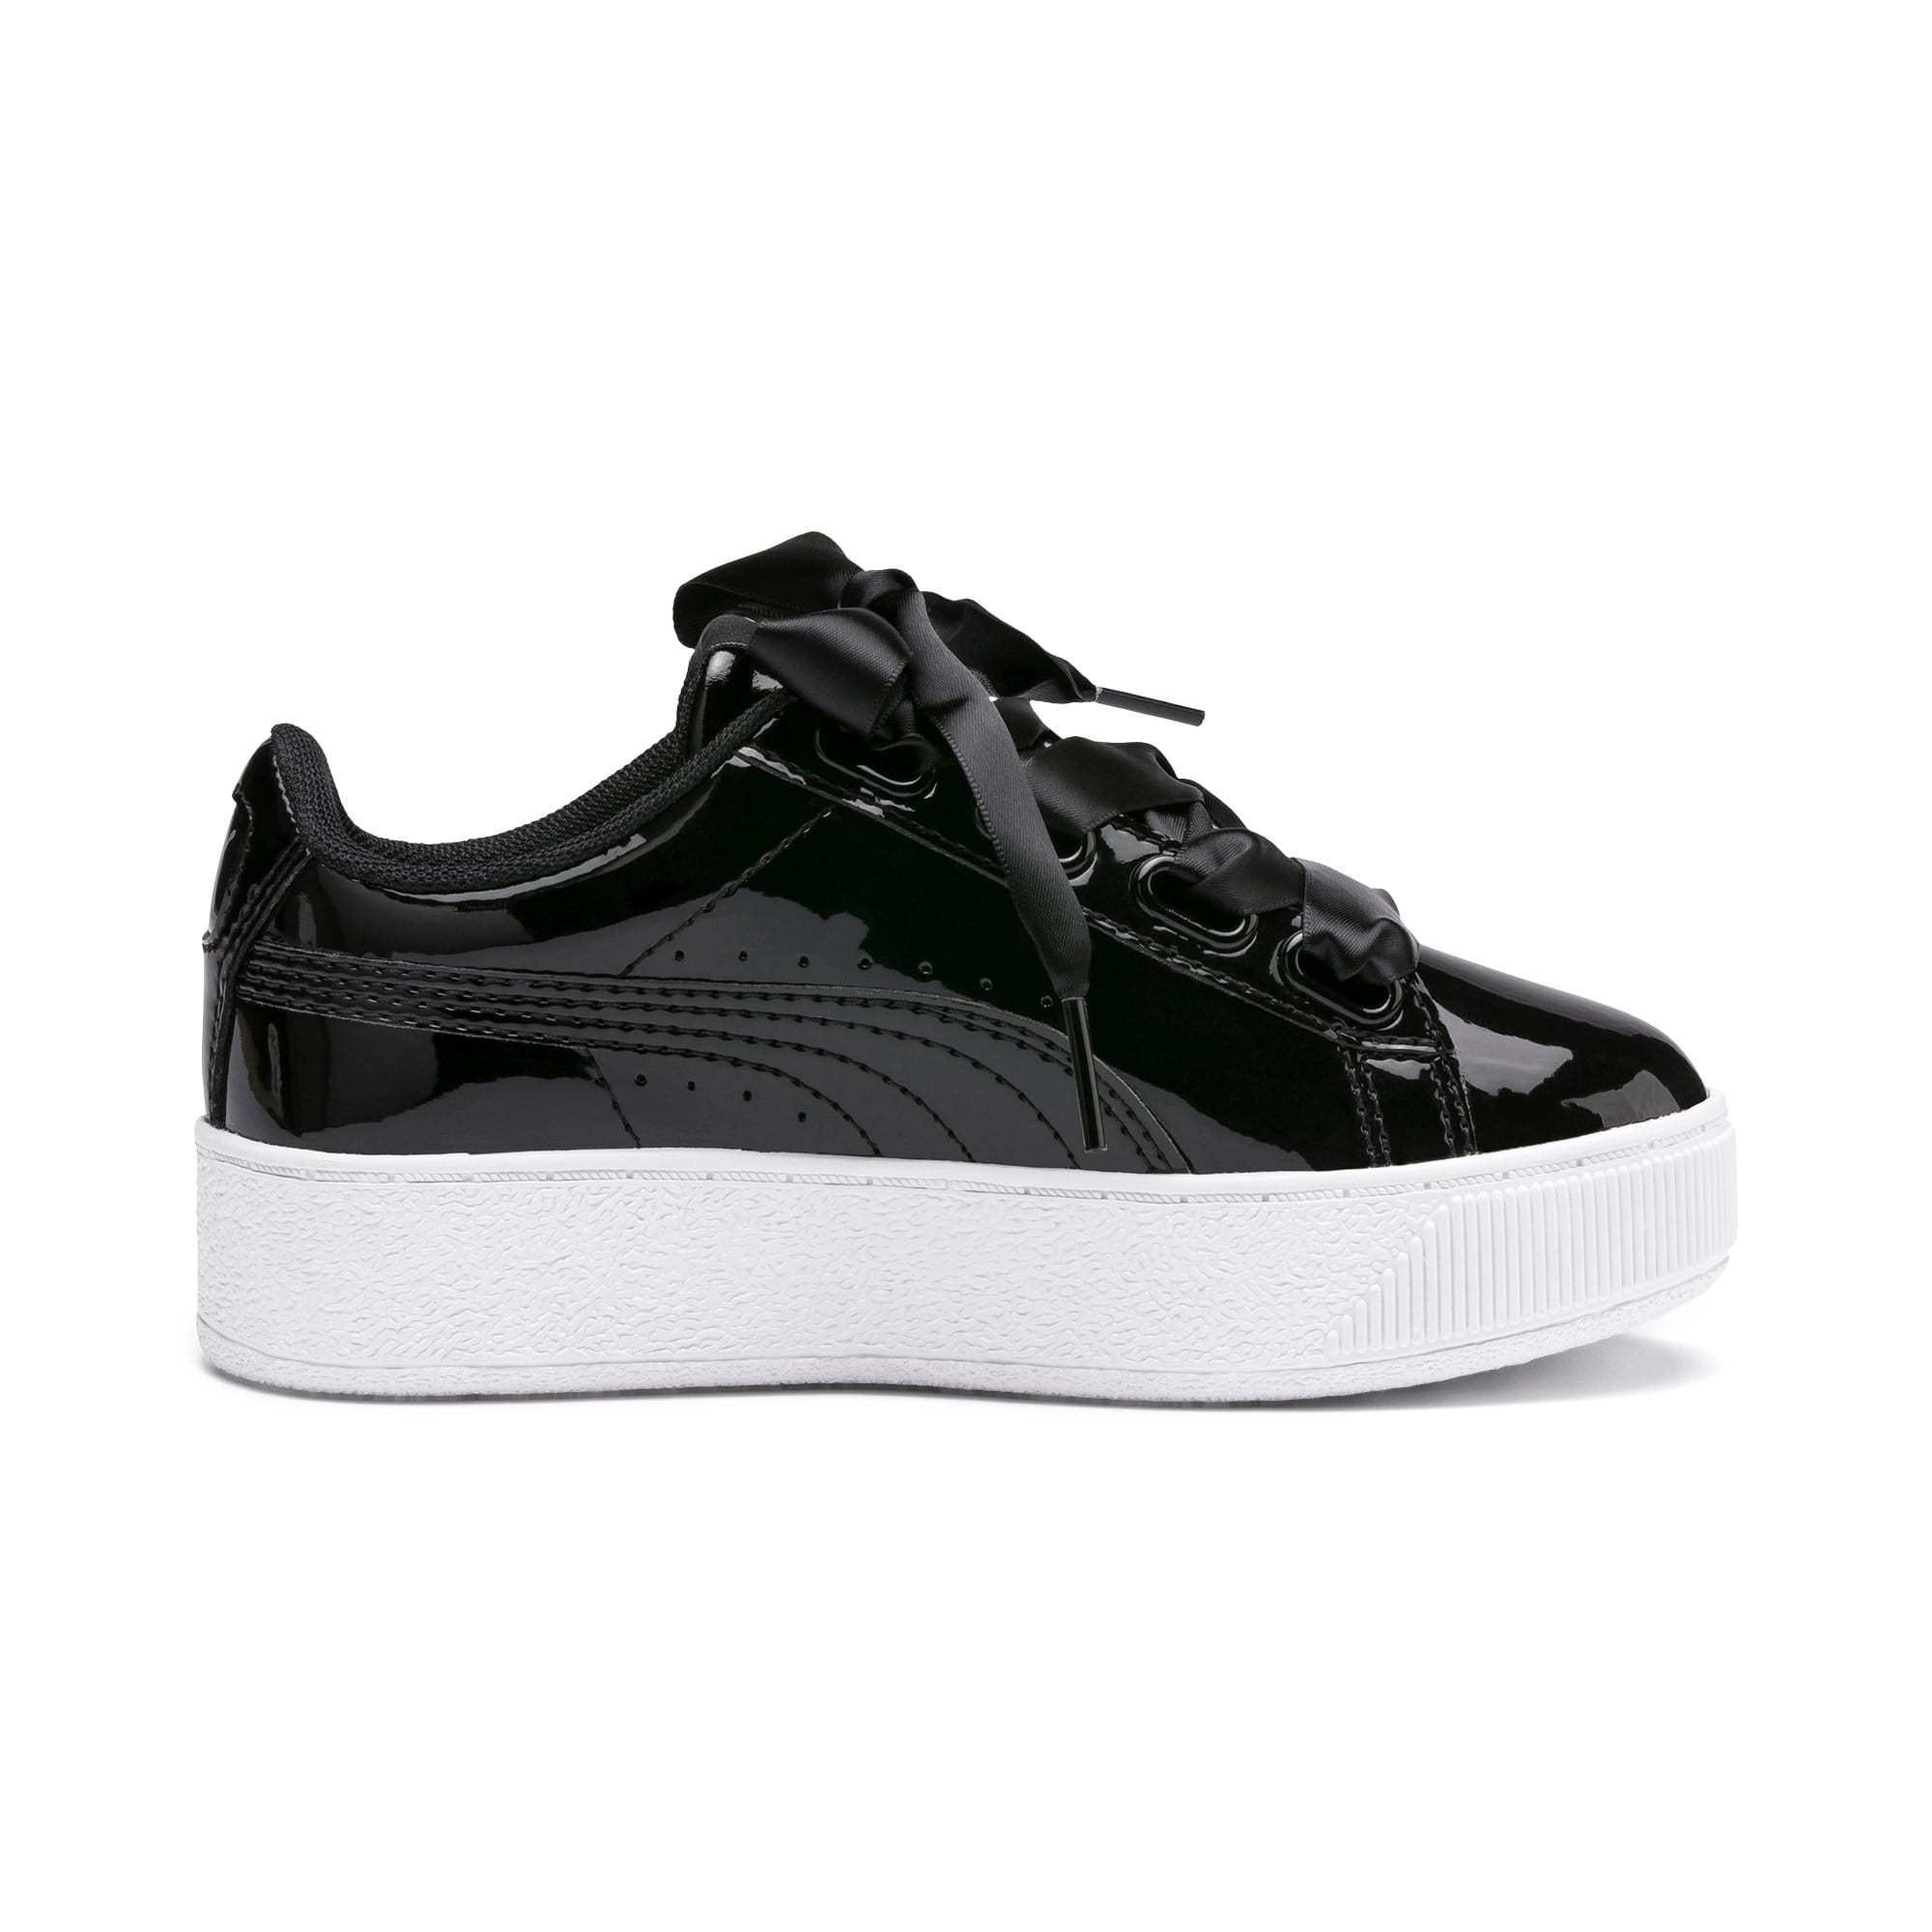 Thumbnail 5 of Vikky Platform Ribbon Patent Kids' Trainers, Puma Black-Puma Black, medium